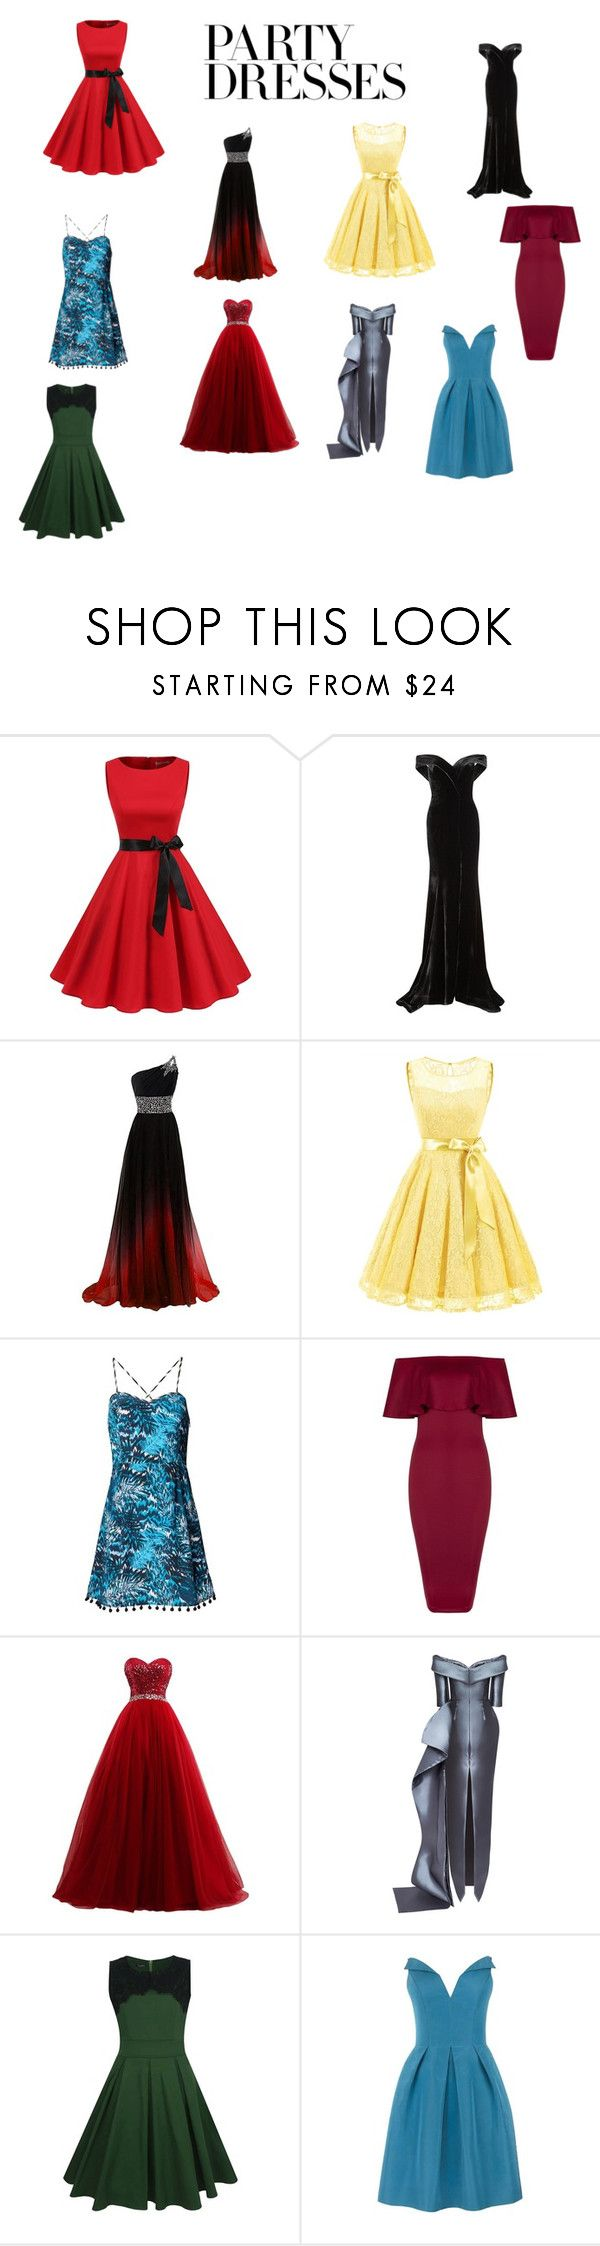 """Untitled #46"" by twentyshades ❤ liked on Polyvore featuring Rachel Gilbert, Matthew Williamson, Mark Bumgarner, WithChic and Oscar de la Renta"